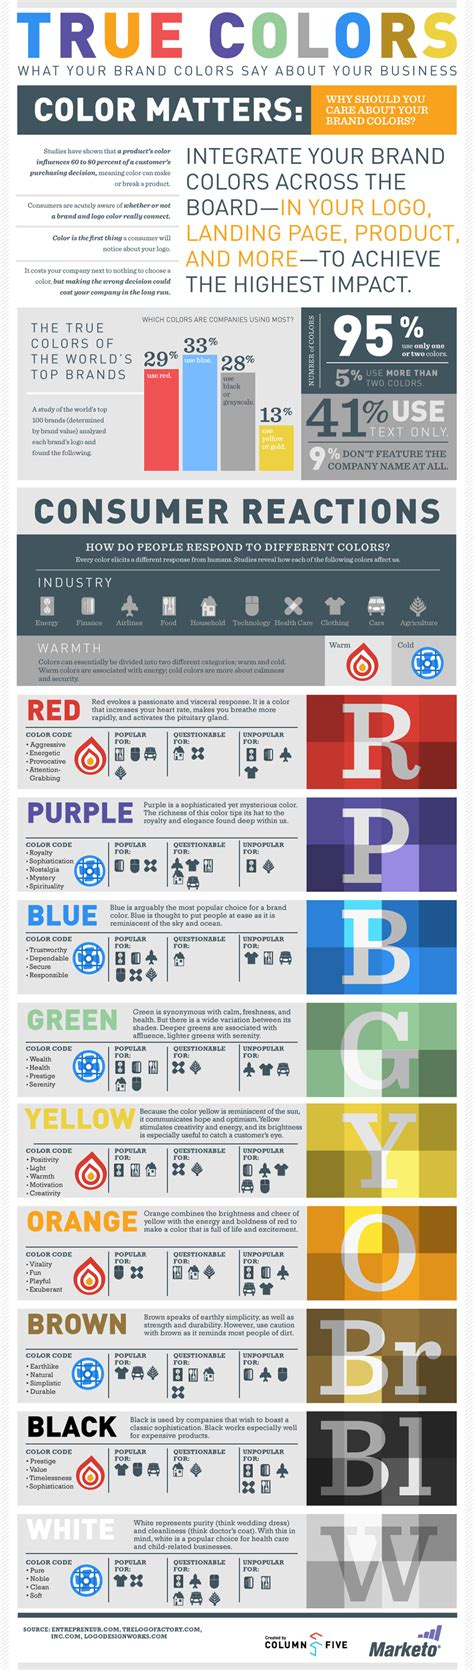 marketing colors what your brand colors say about your business